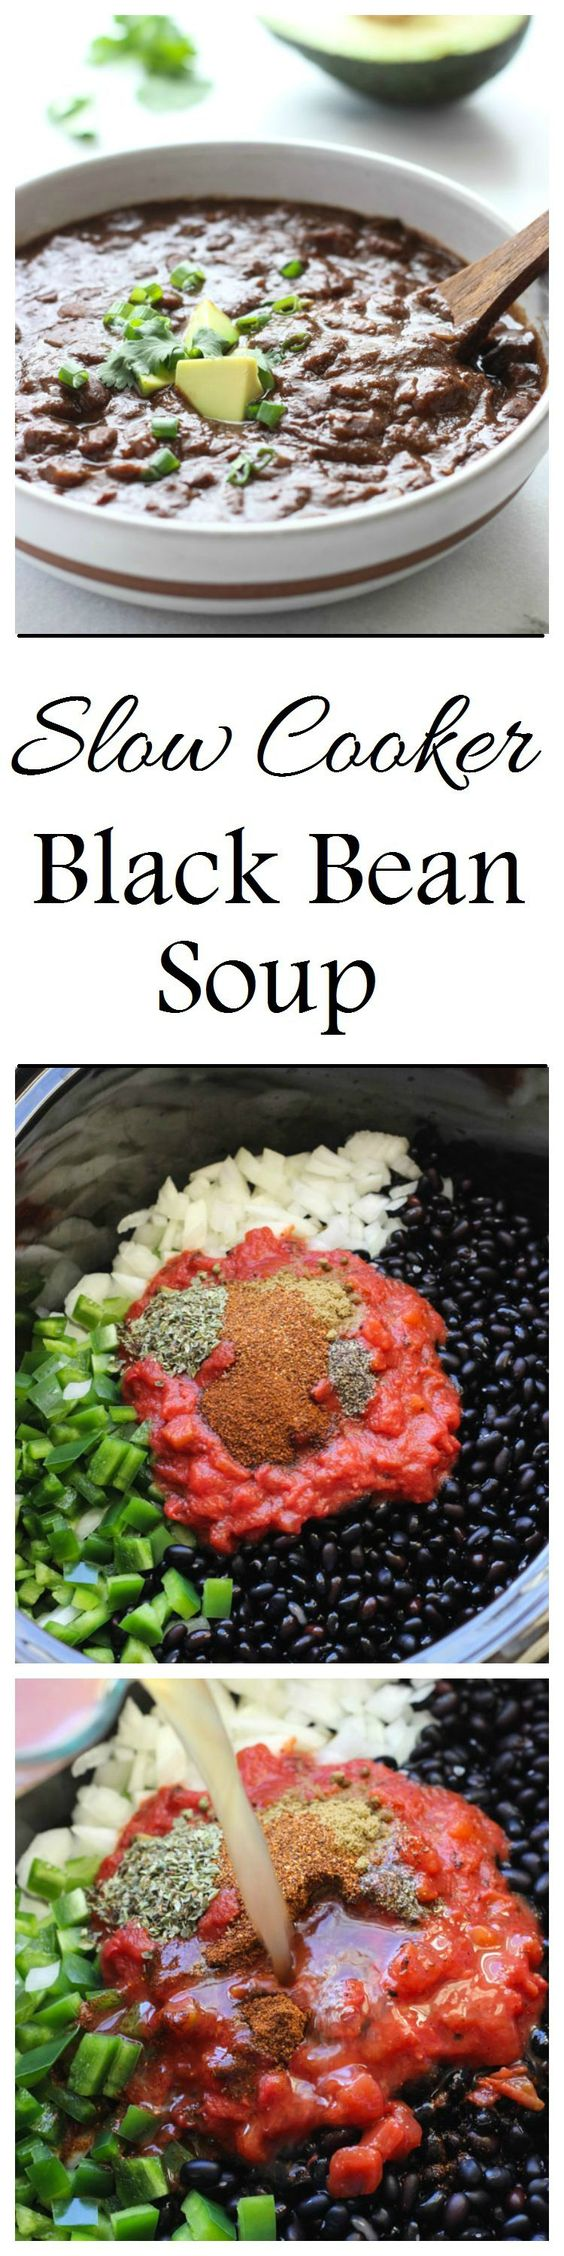 Easy Slow Cooker Black Bean Soup- packed with antioxidants and protein ...